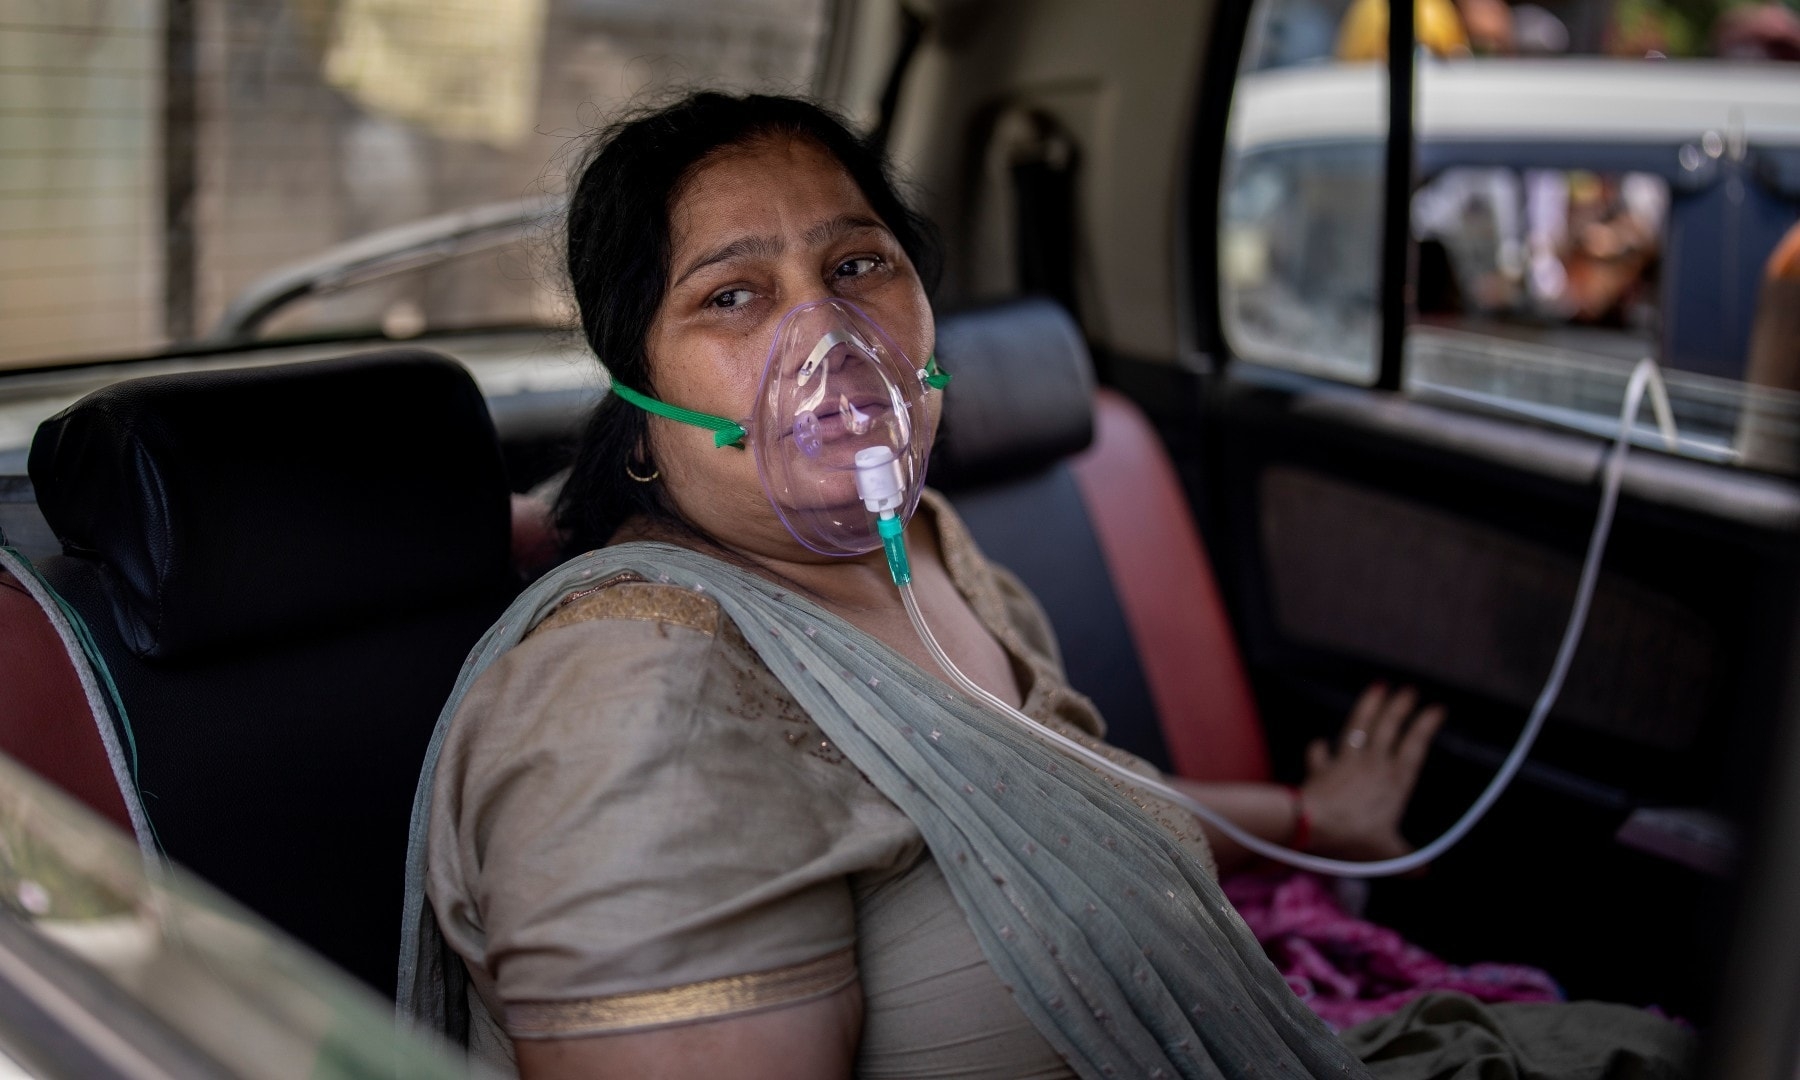 A Covid-19 patient sits inside a car and breathes with the help of oxygen provided by a Gurdwara, a Sikh house of worship, in New Delhi on April 24. — AP